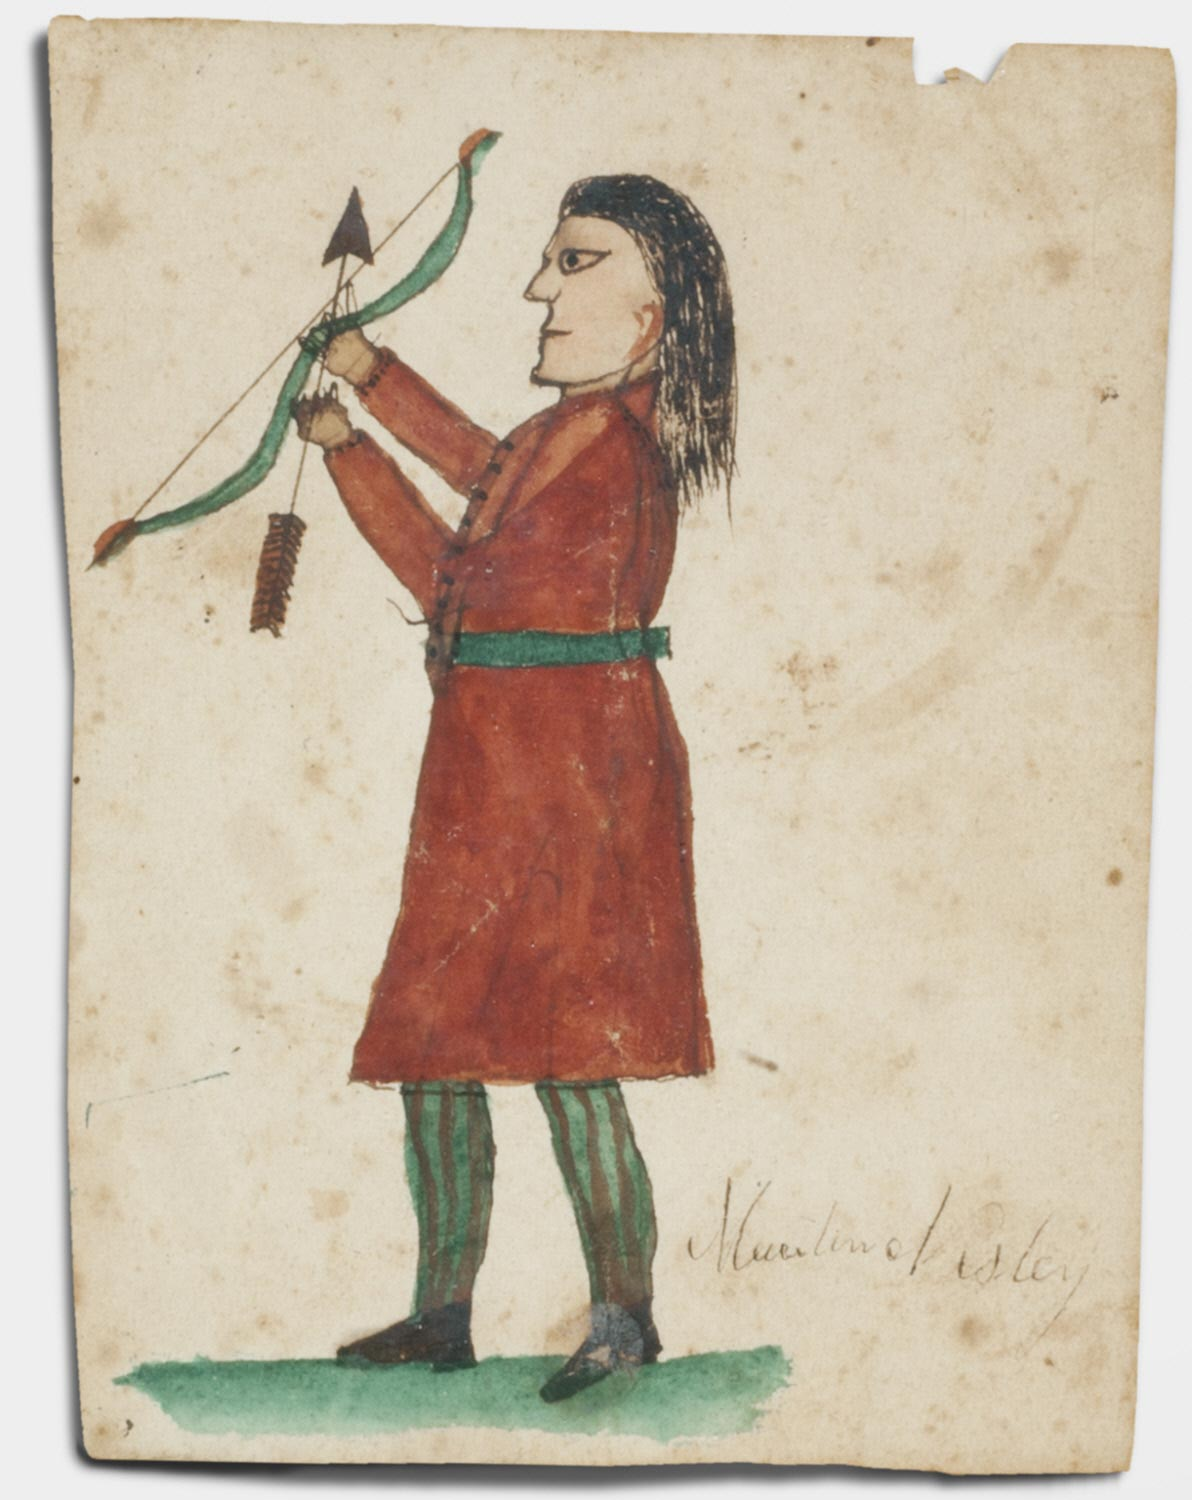 Portrait of a Man with Bow and Arrow for Martin Nisley